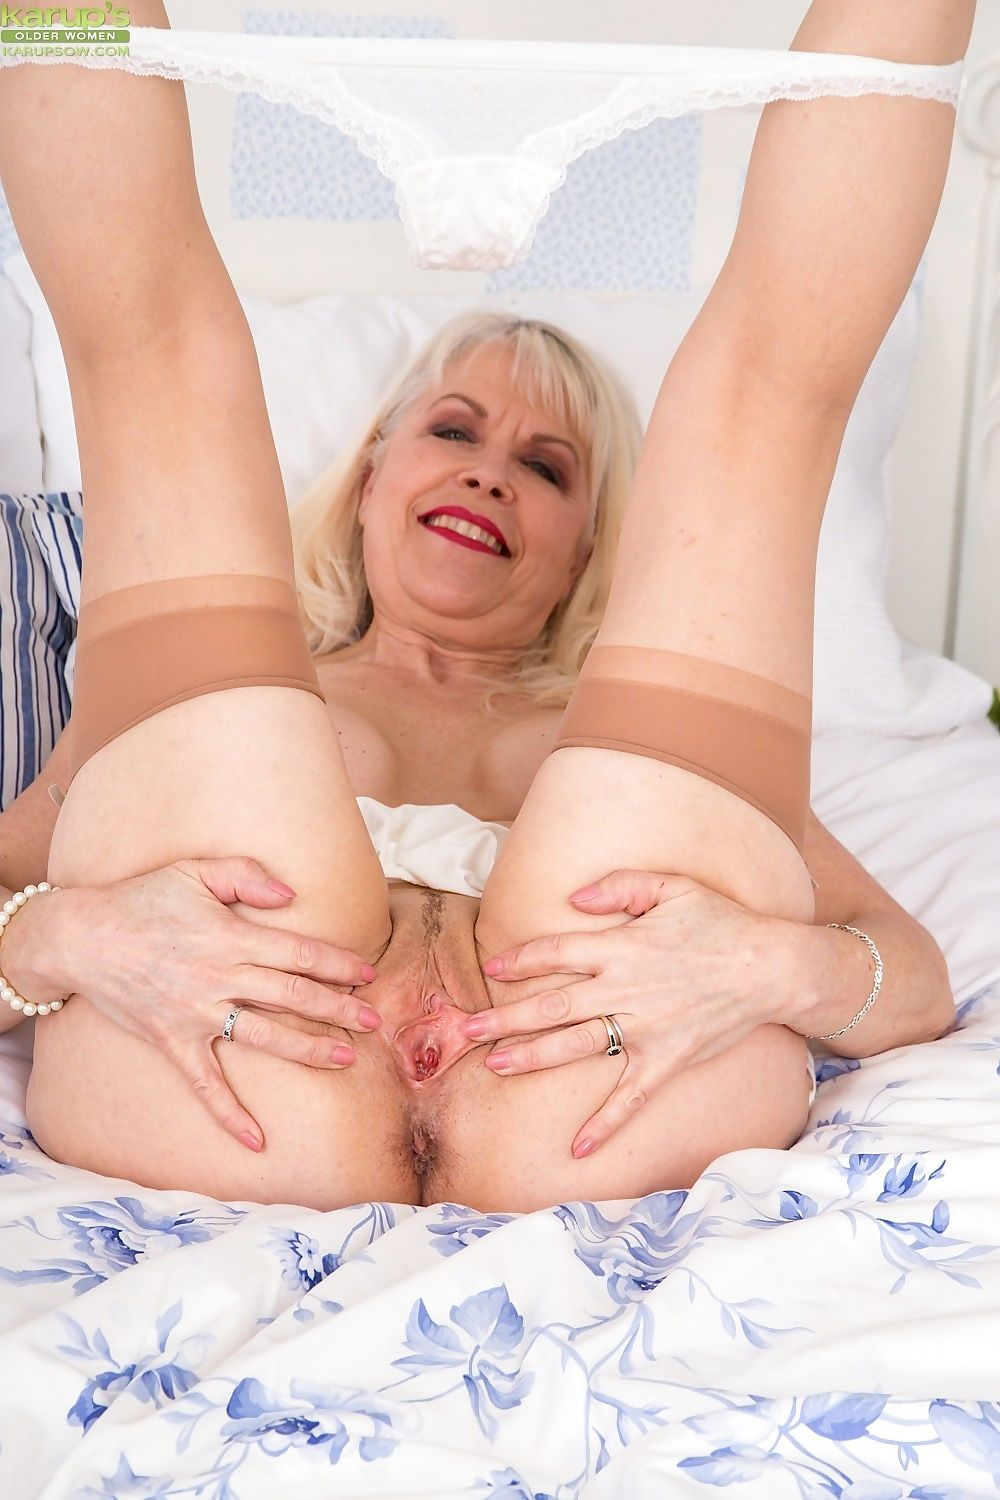 Busty granny margaret holt naked in beige stockings - part 773